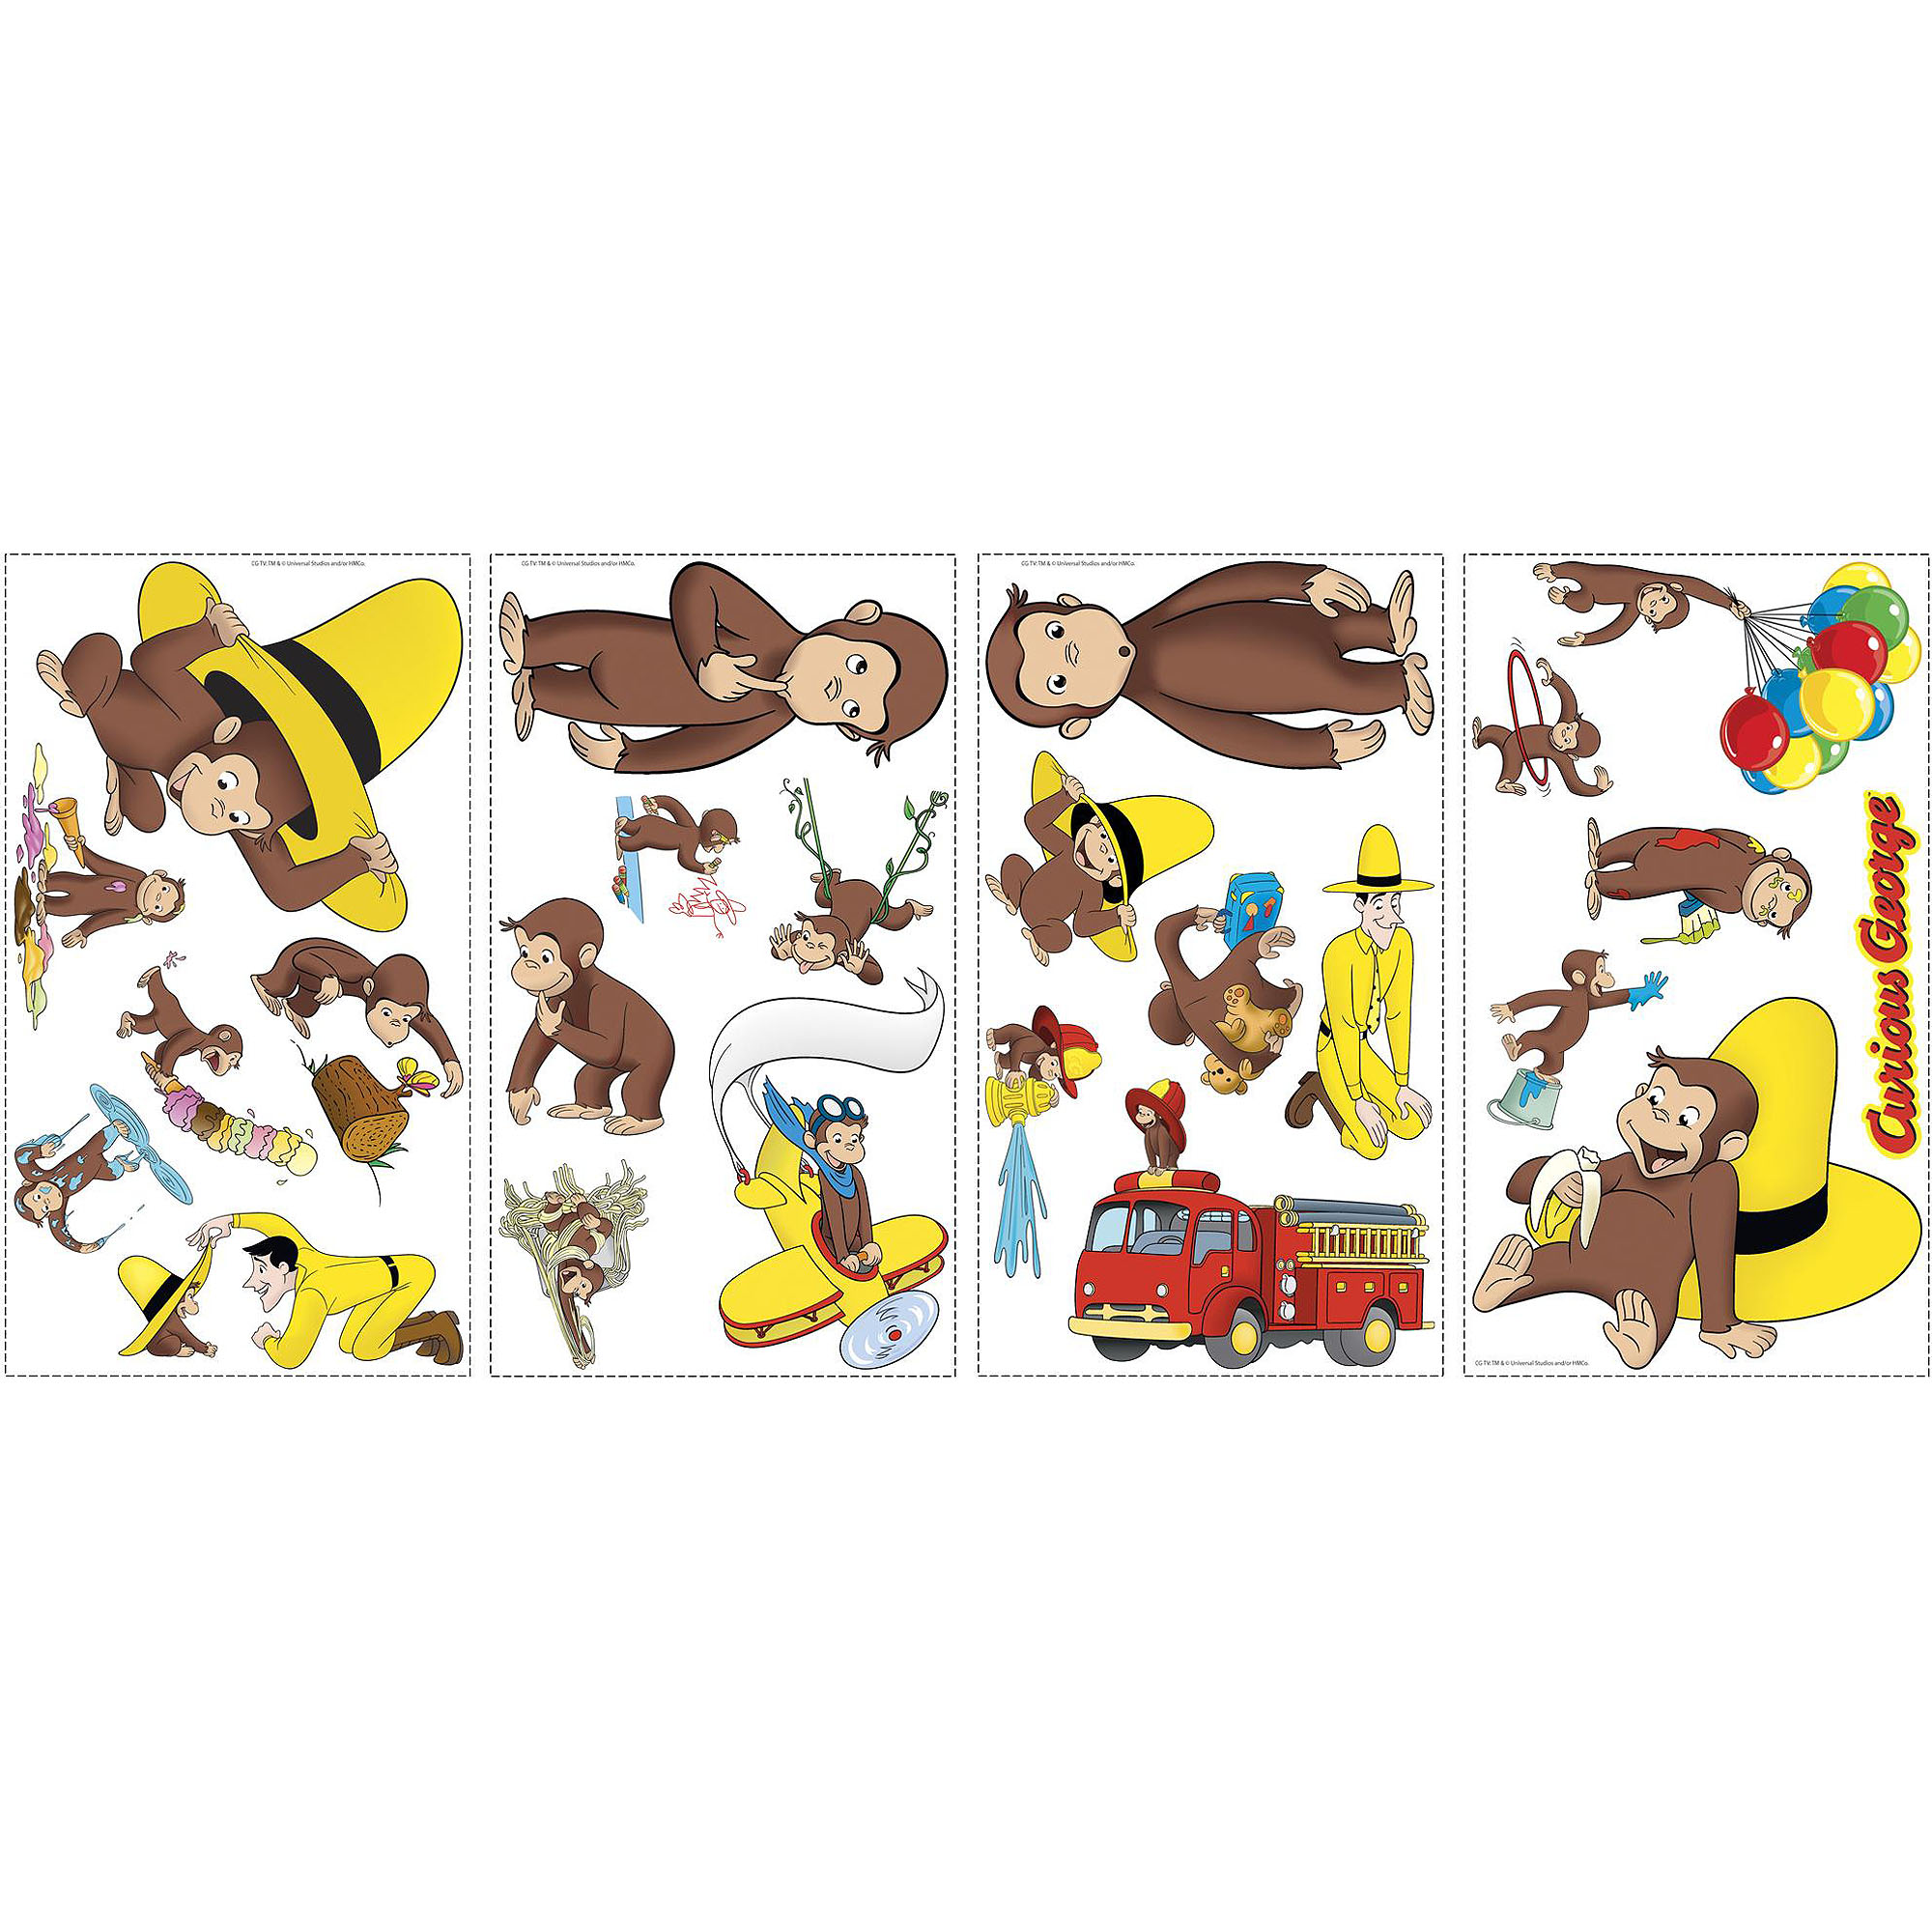 RoomMates Curious George Peel and Stick Wall Decals